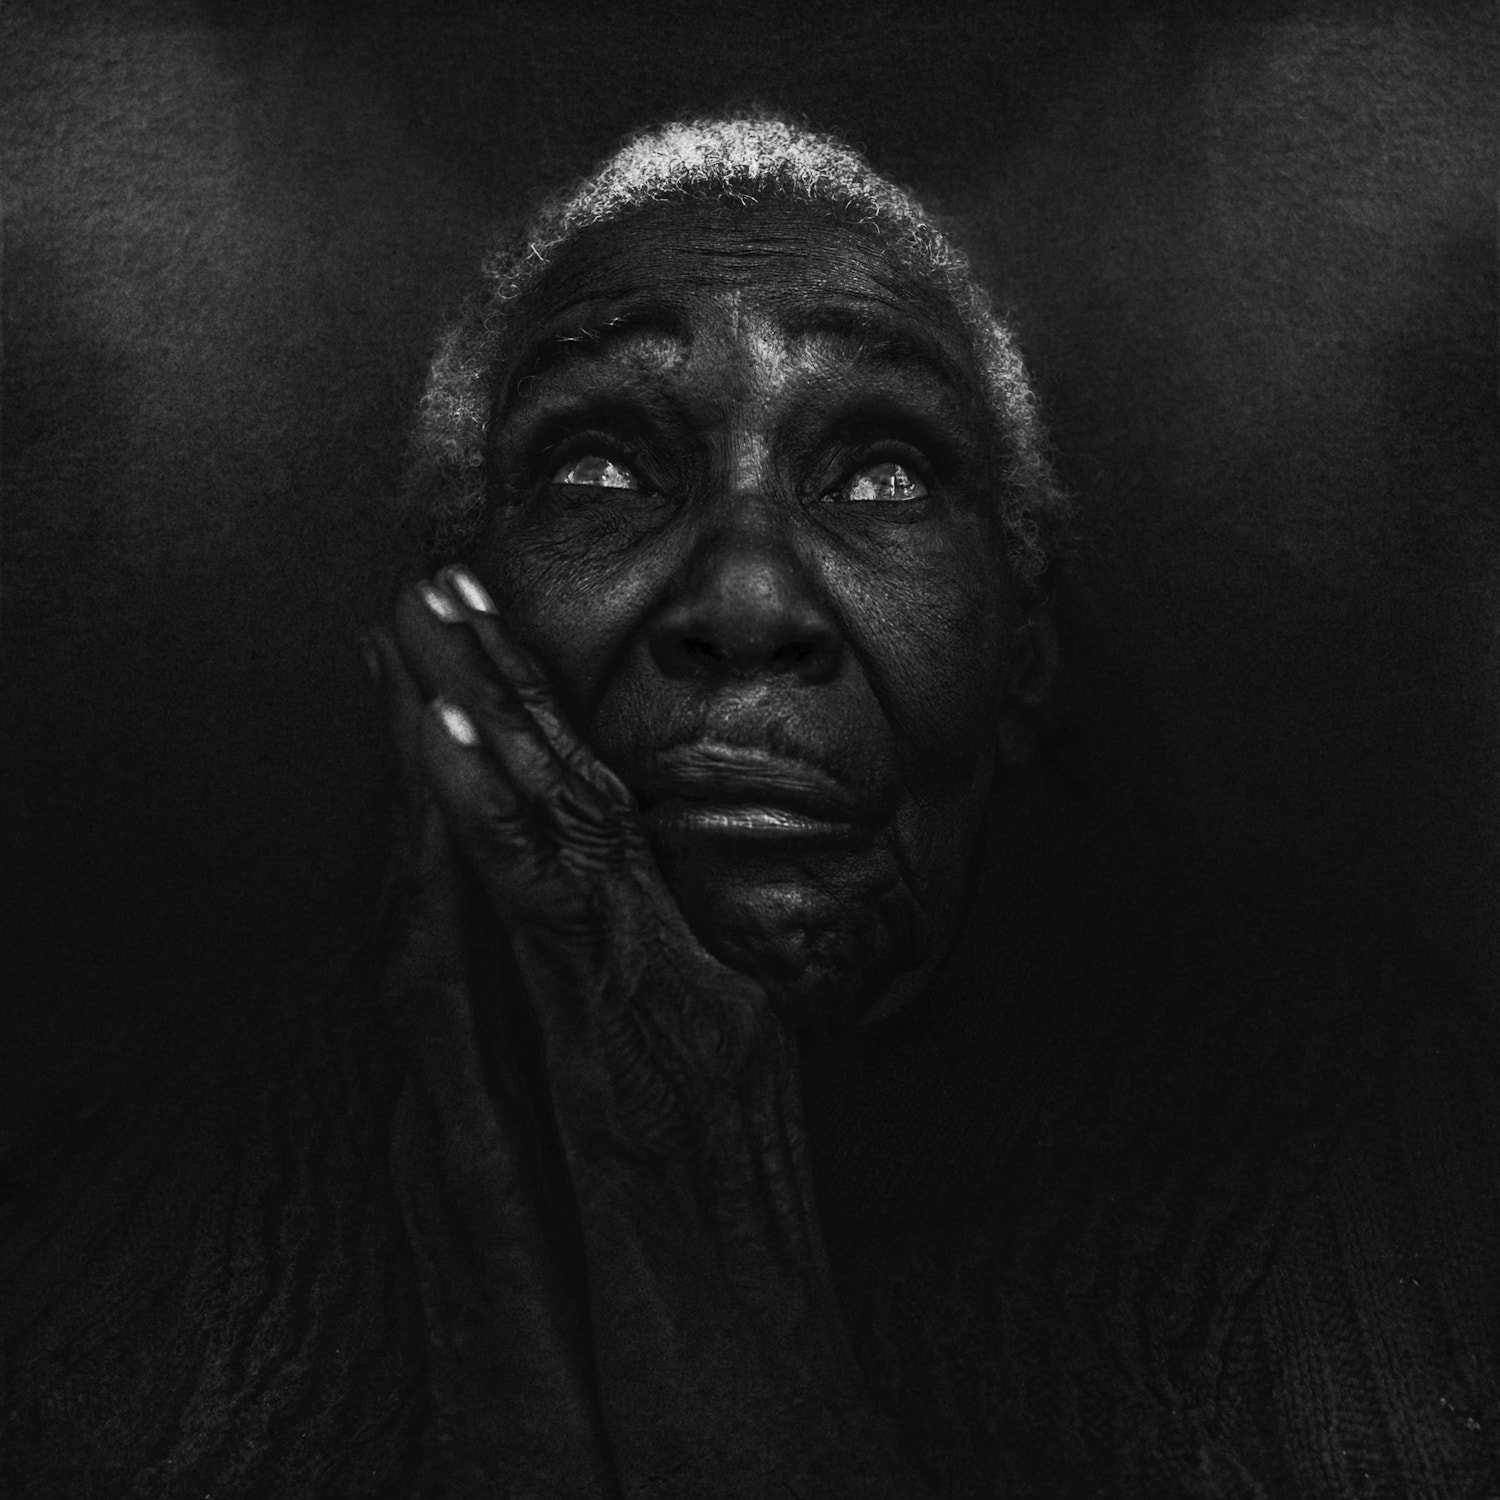 Photograph 5th. by Lee Jeffries on 500px